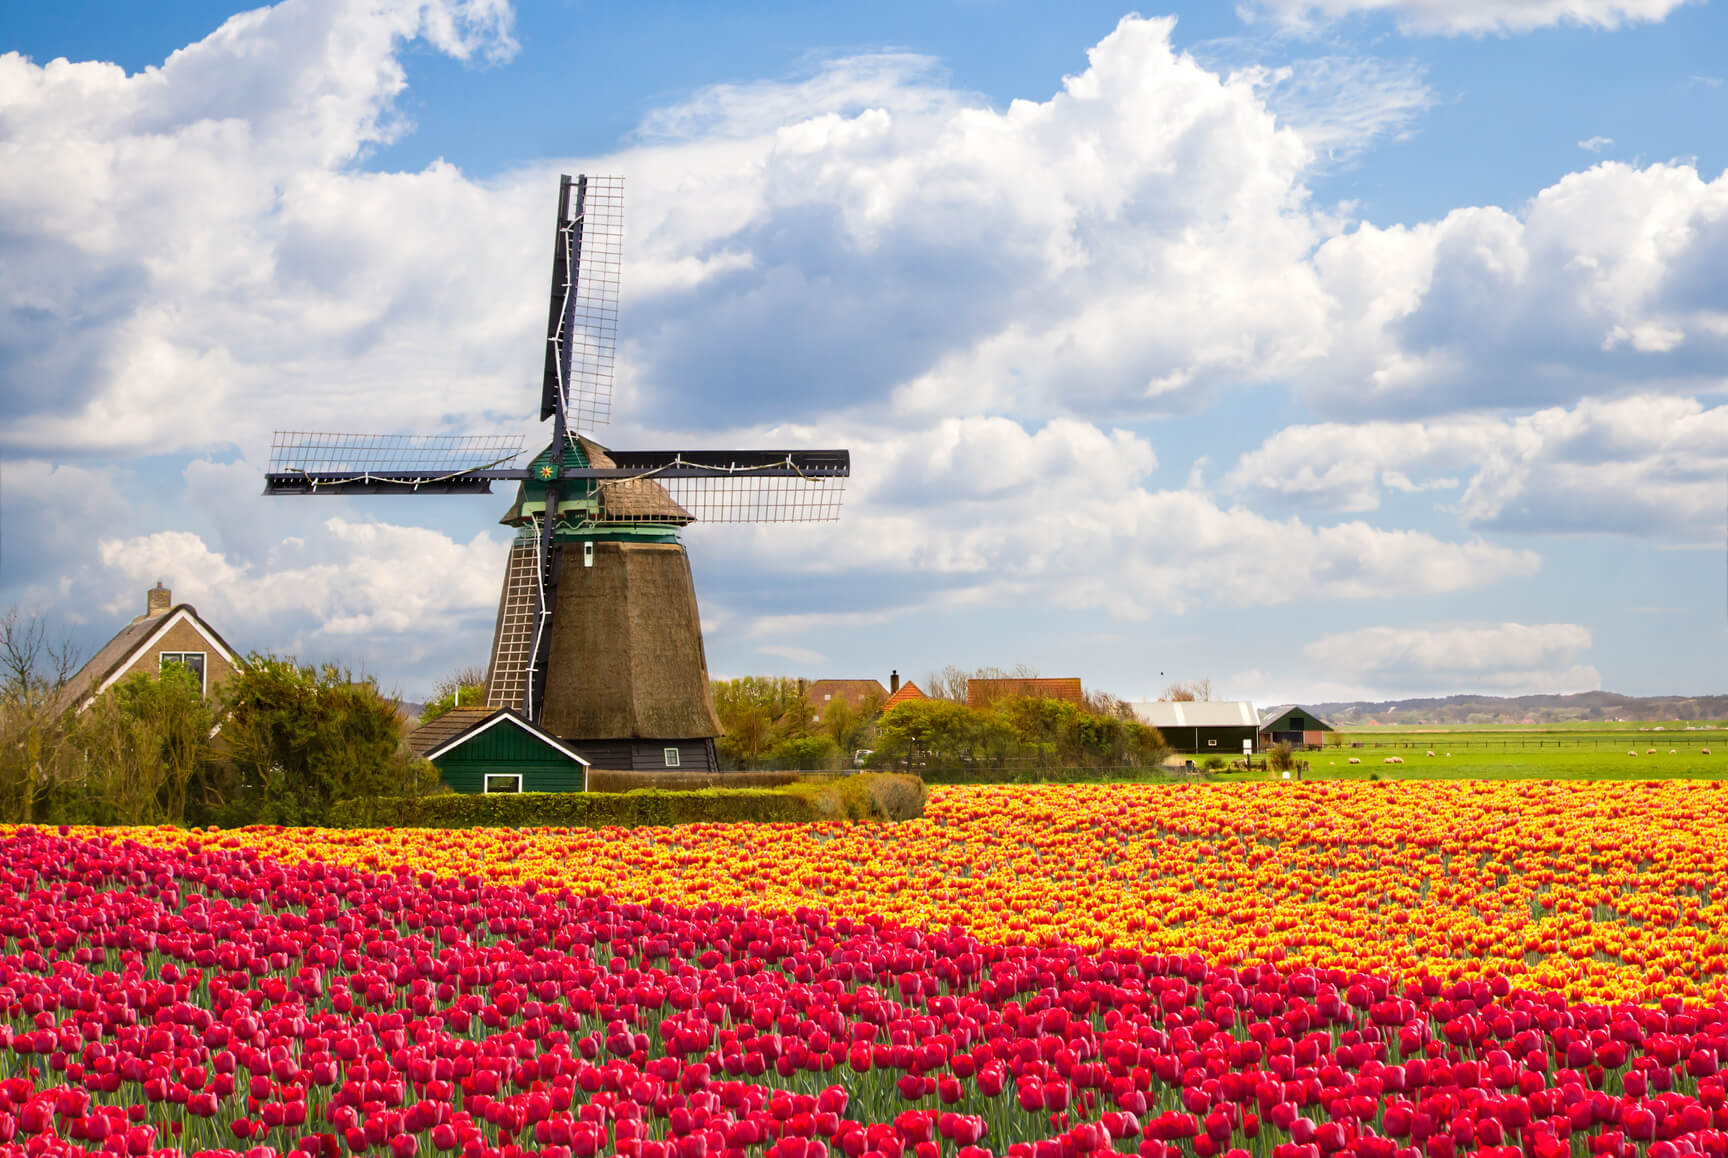 Toronto, Canada to Amsterdam, Netherlands for only $536 CAD roundtrip (Nov-Feb dates)